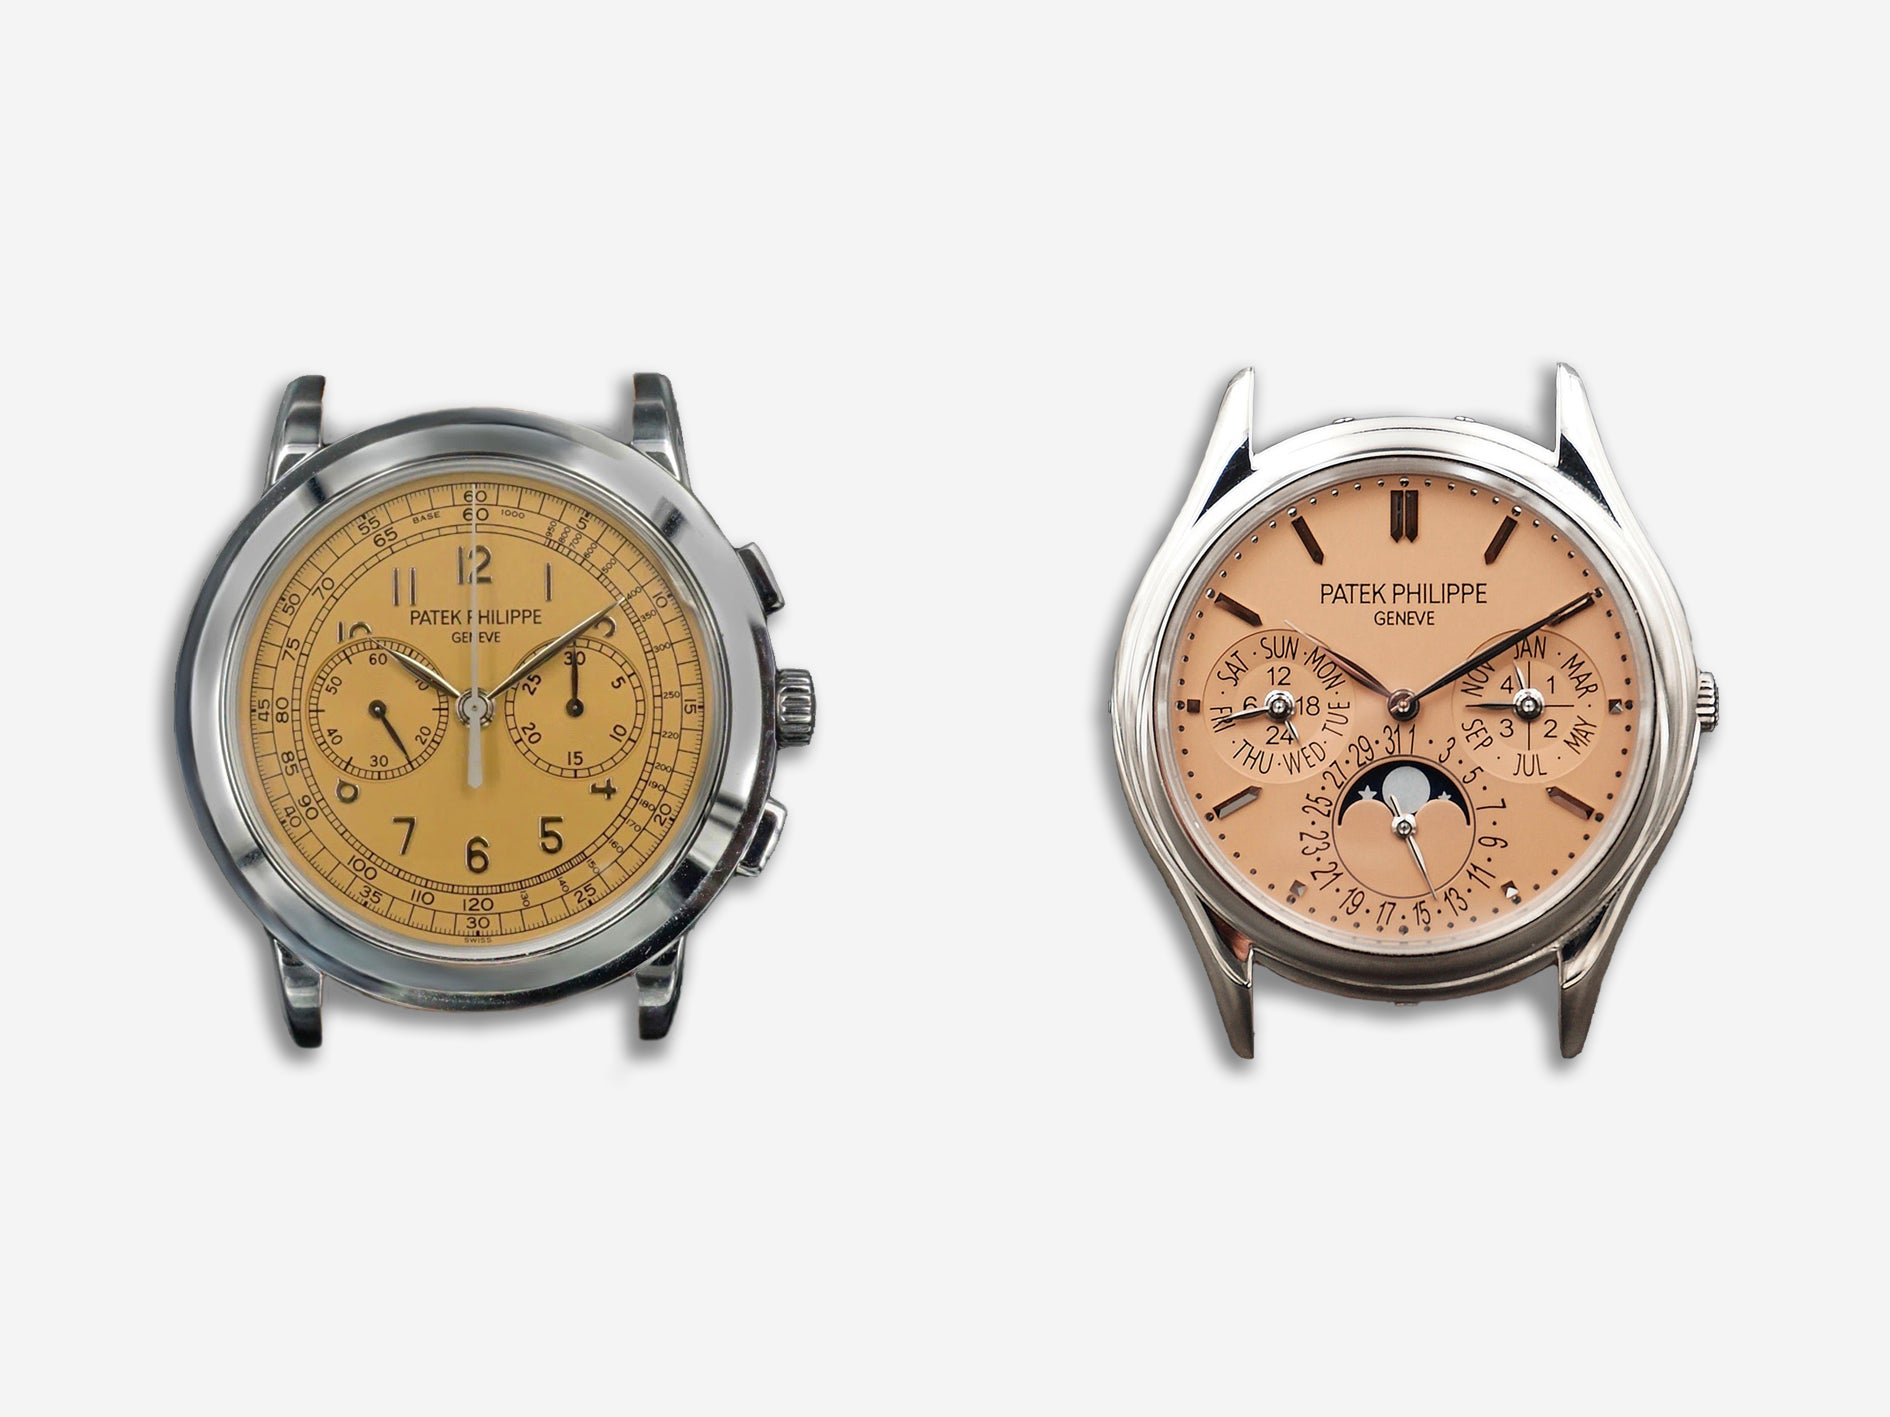 Patek Philippe 5070G and 3940G Saatchi Editions with salmon dials